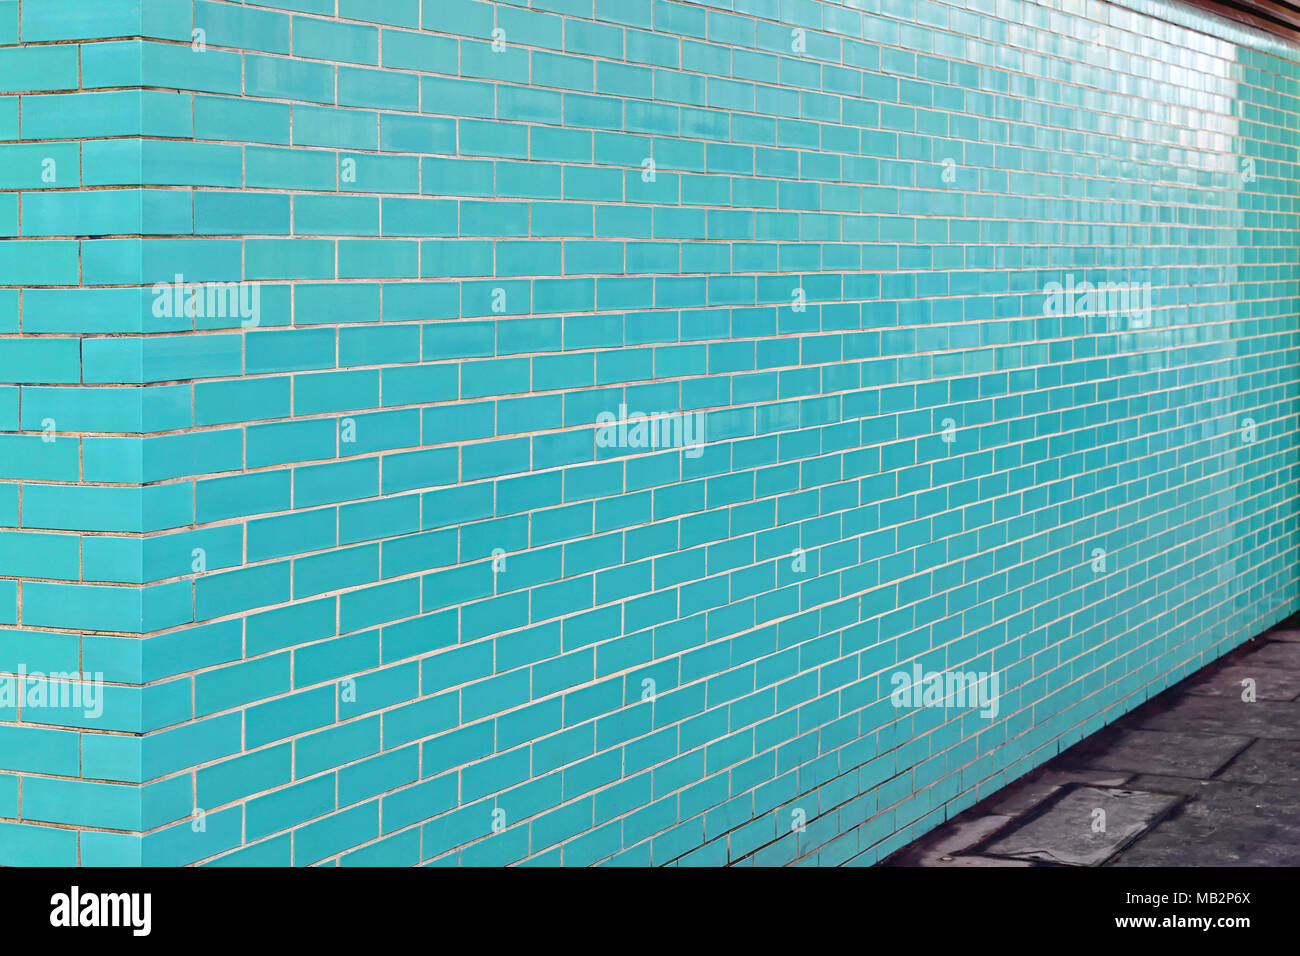 Turquoise Brick Tiles Wall Side View Perspective